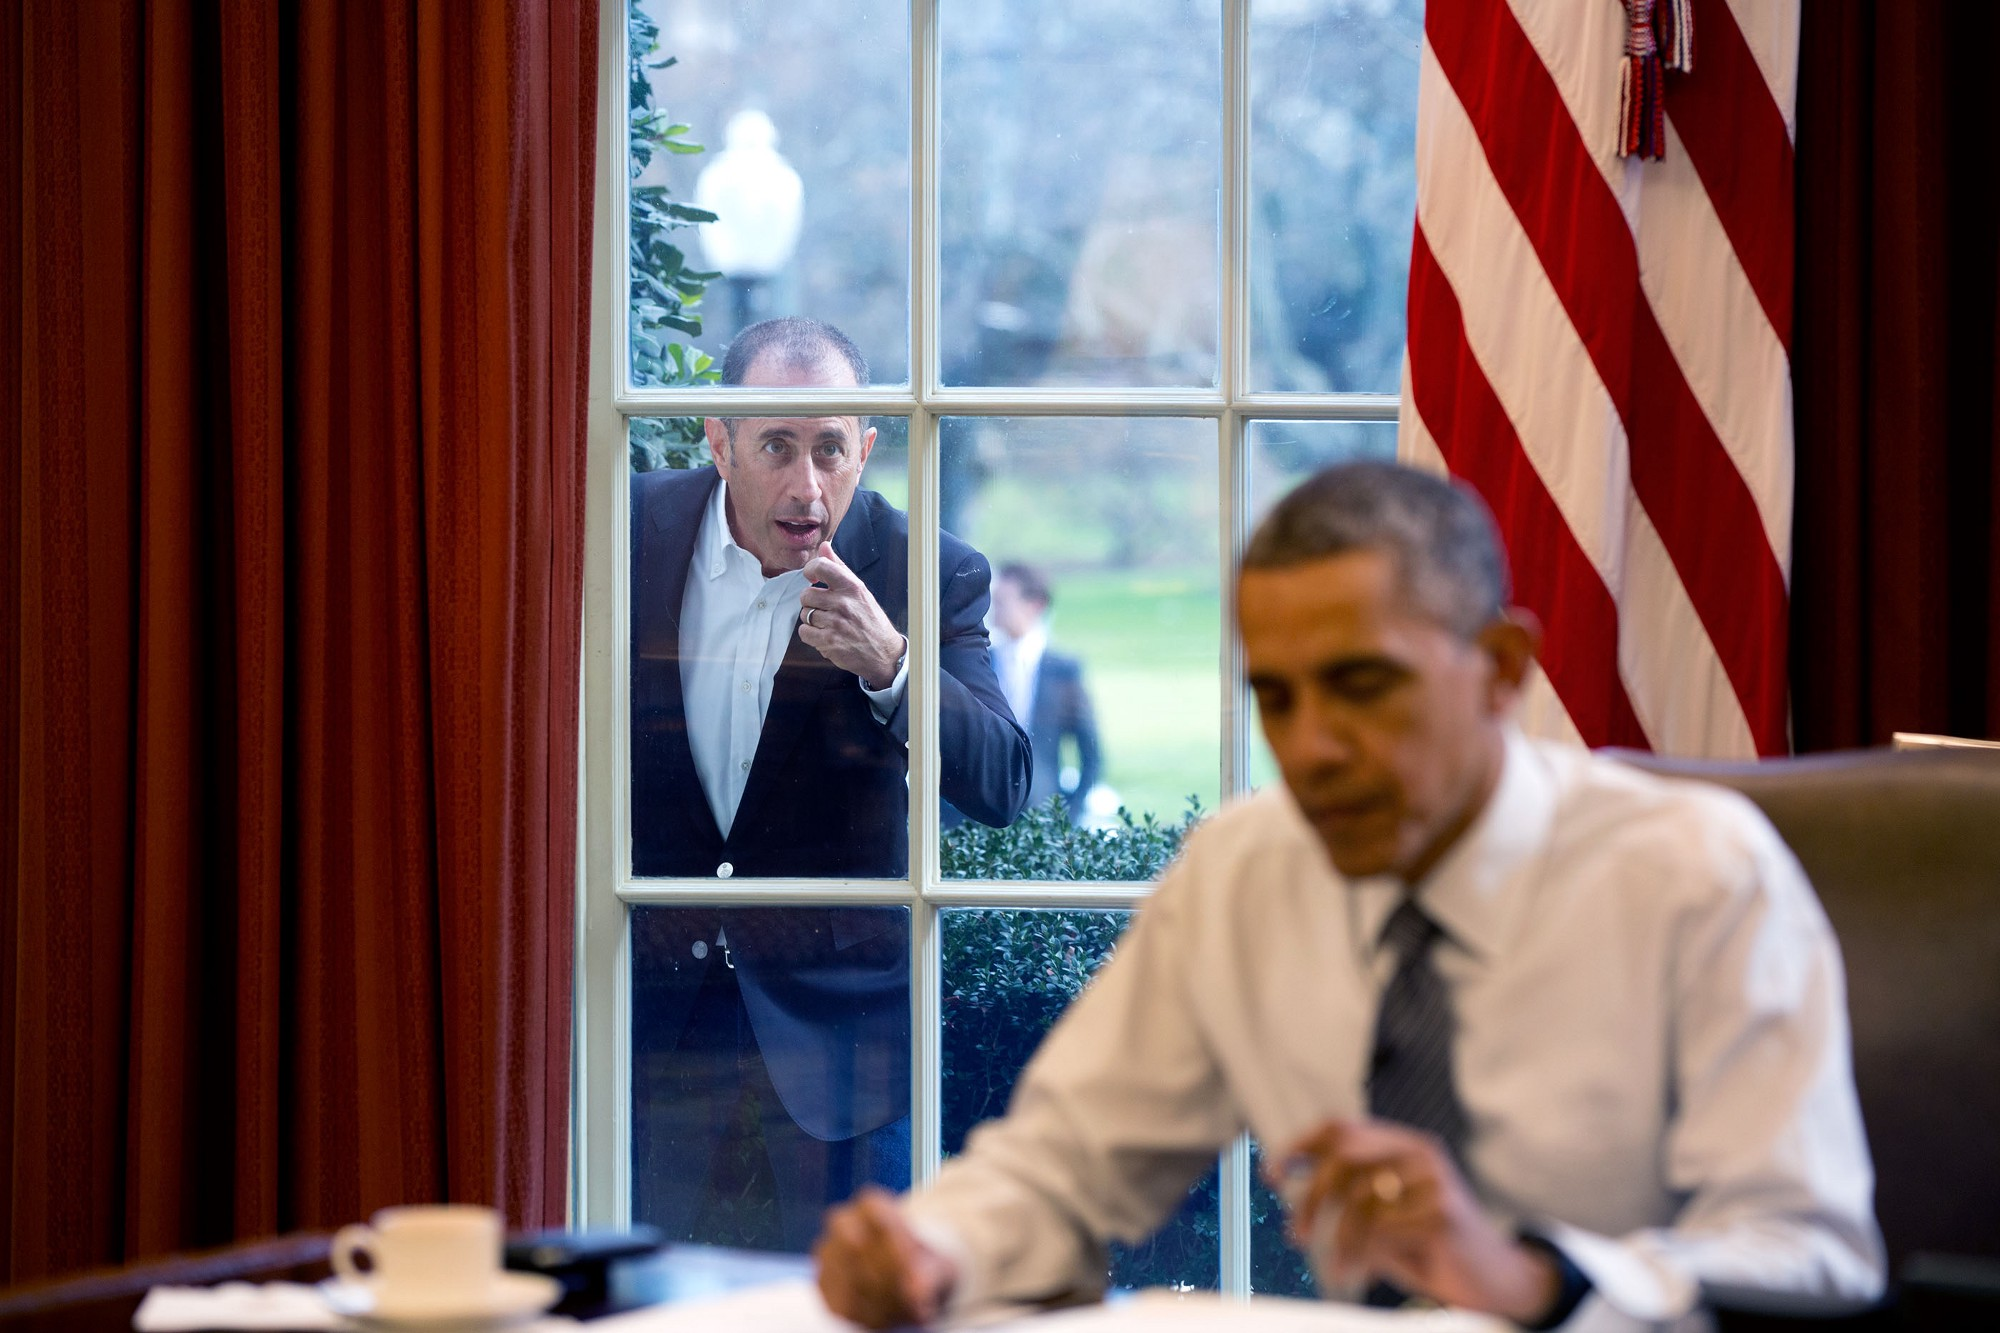 "Dec. 7, 2015 ""Comedian Jerry Seinfeld knocks on the Oval Office window to begin a segment for his series, 'Comedians in Cars Getting Coffee.'"" (Official White House Photo by Pete Souza)"